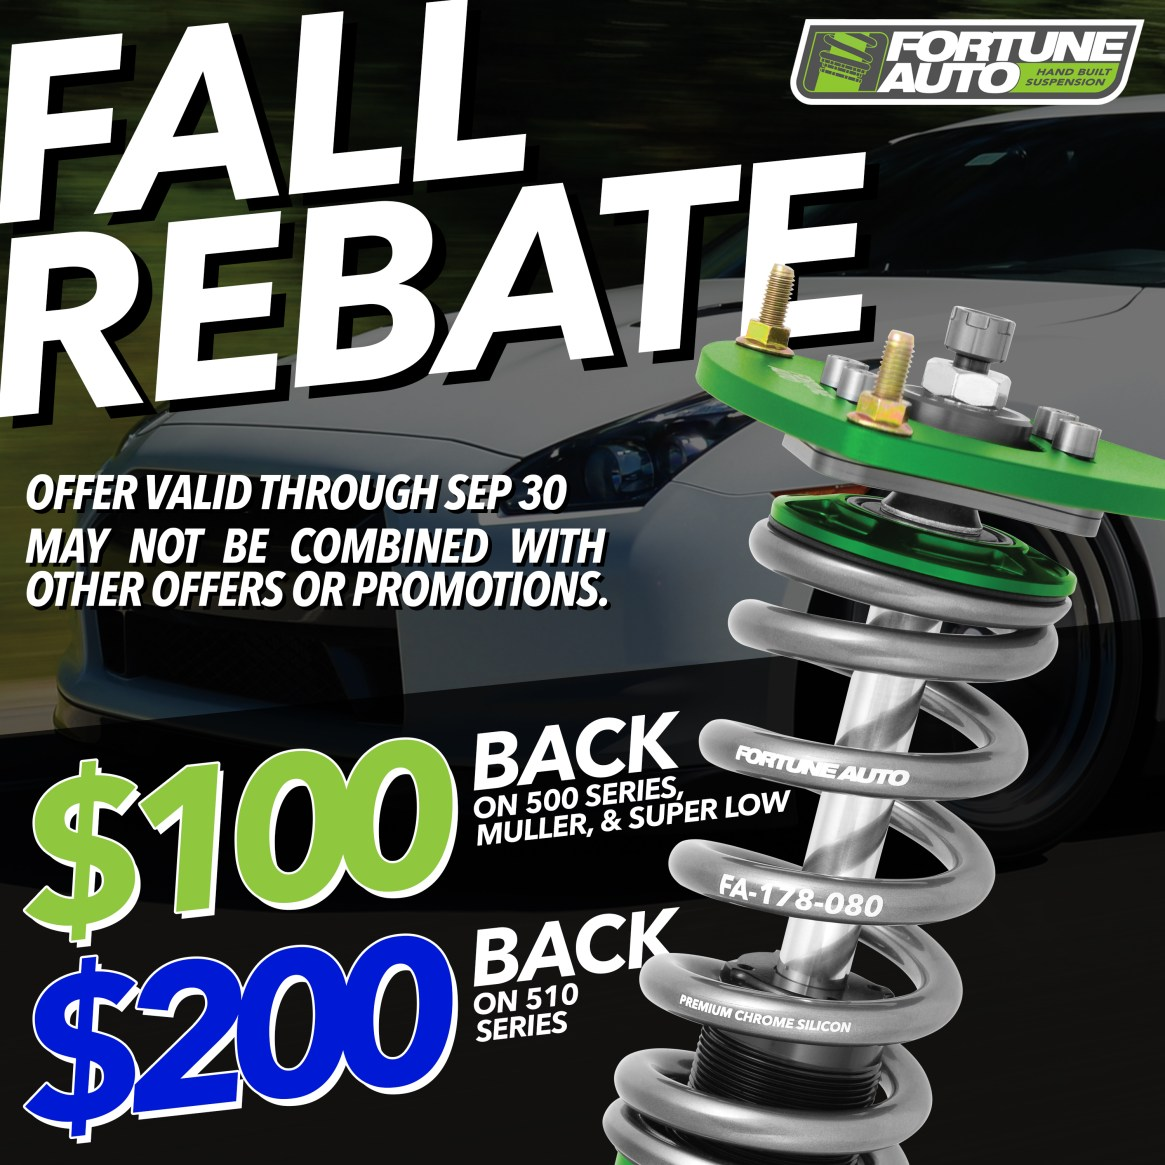 Fortune Auto Fall rebate offering $100 off of 500 Series and $200 off of 510 series